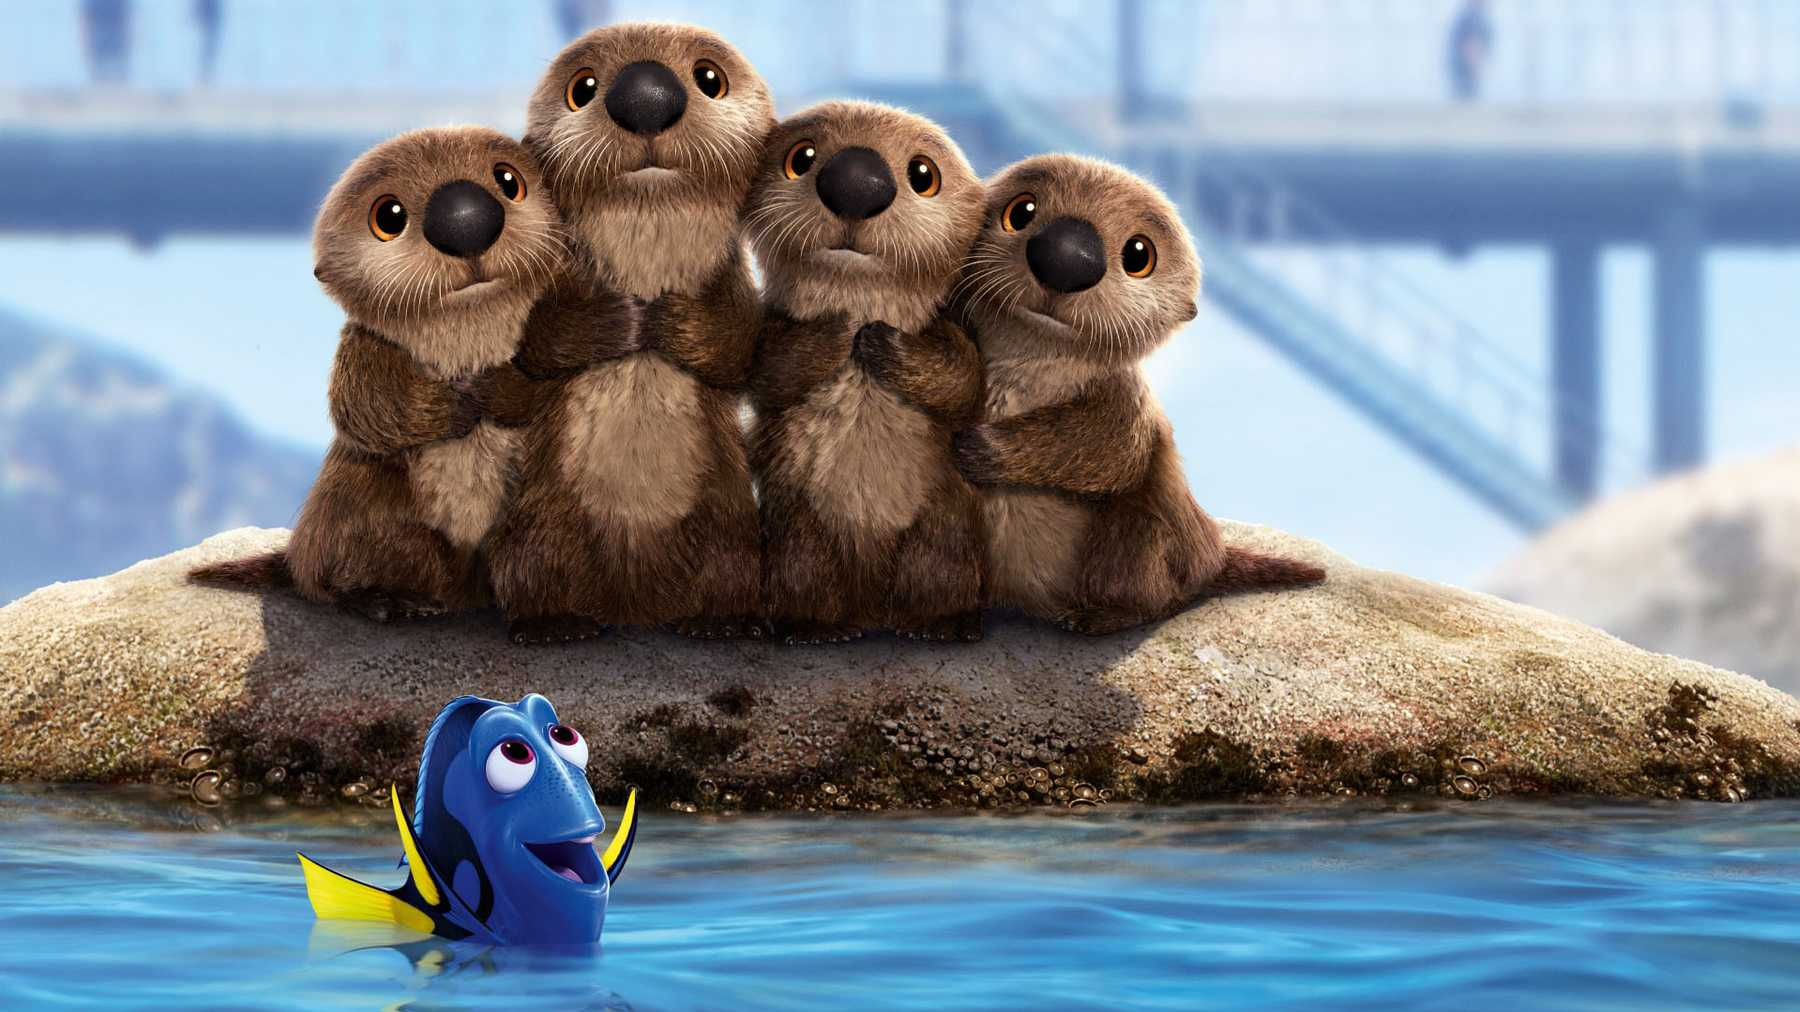 Dory with adorable otters